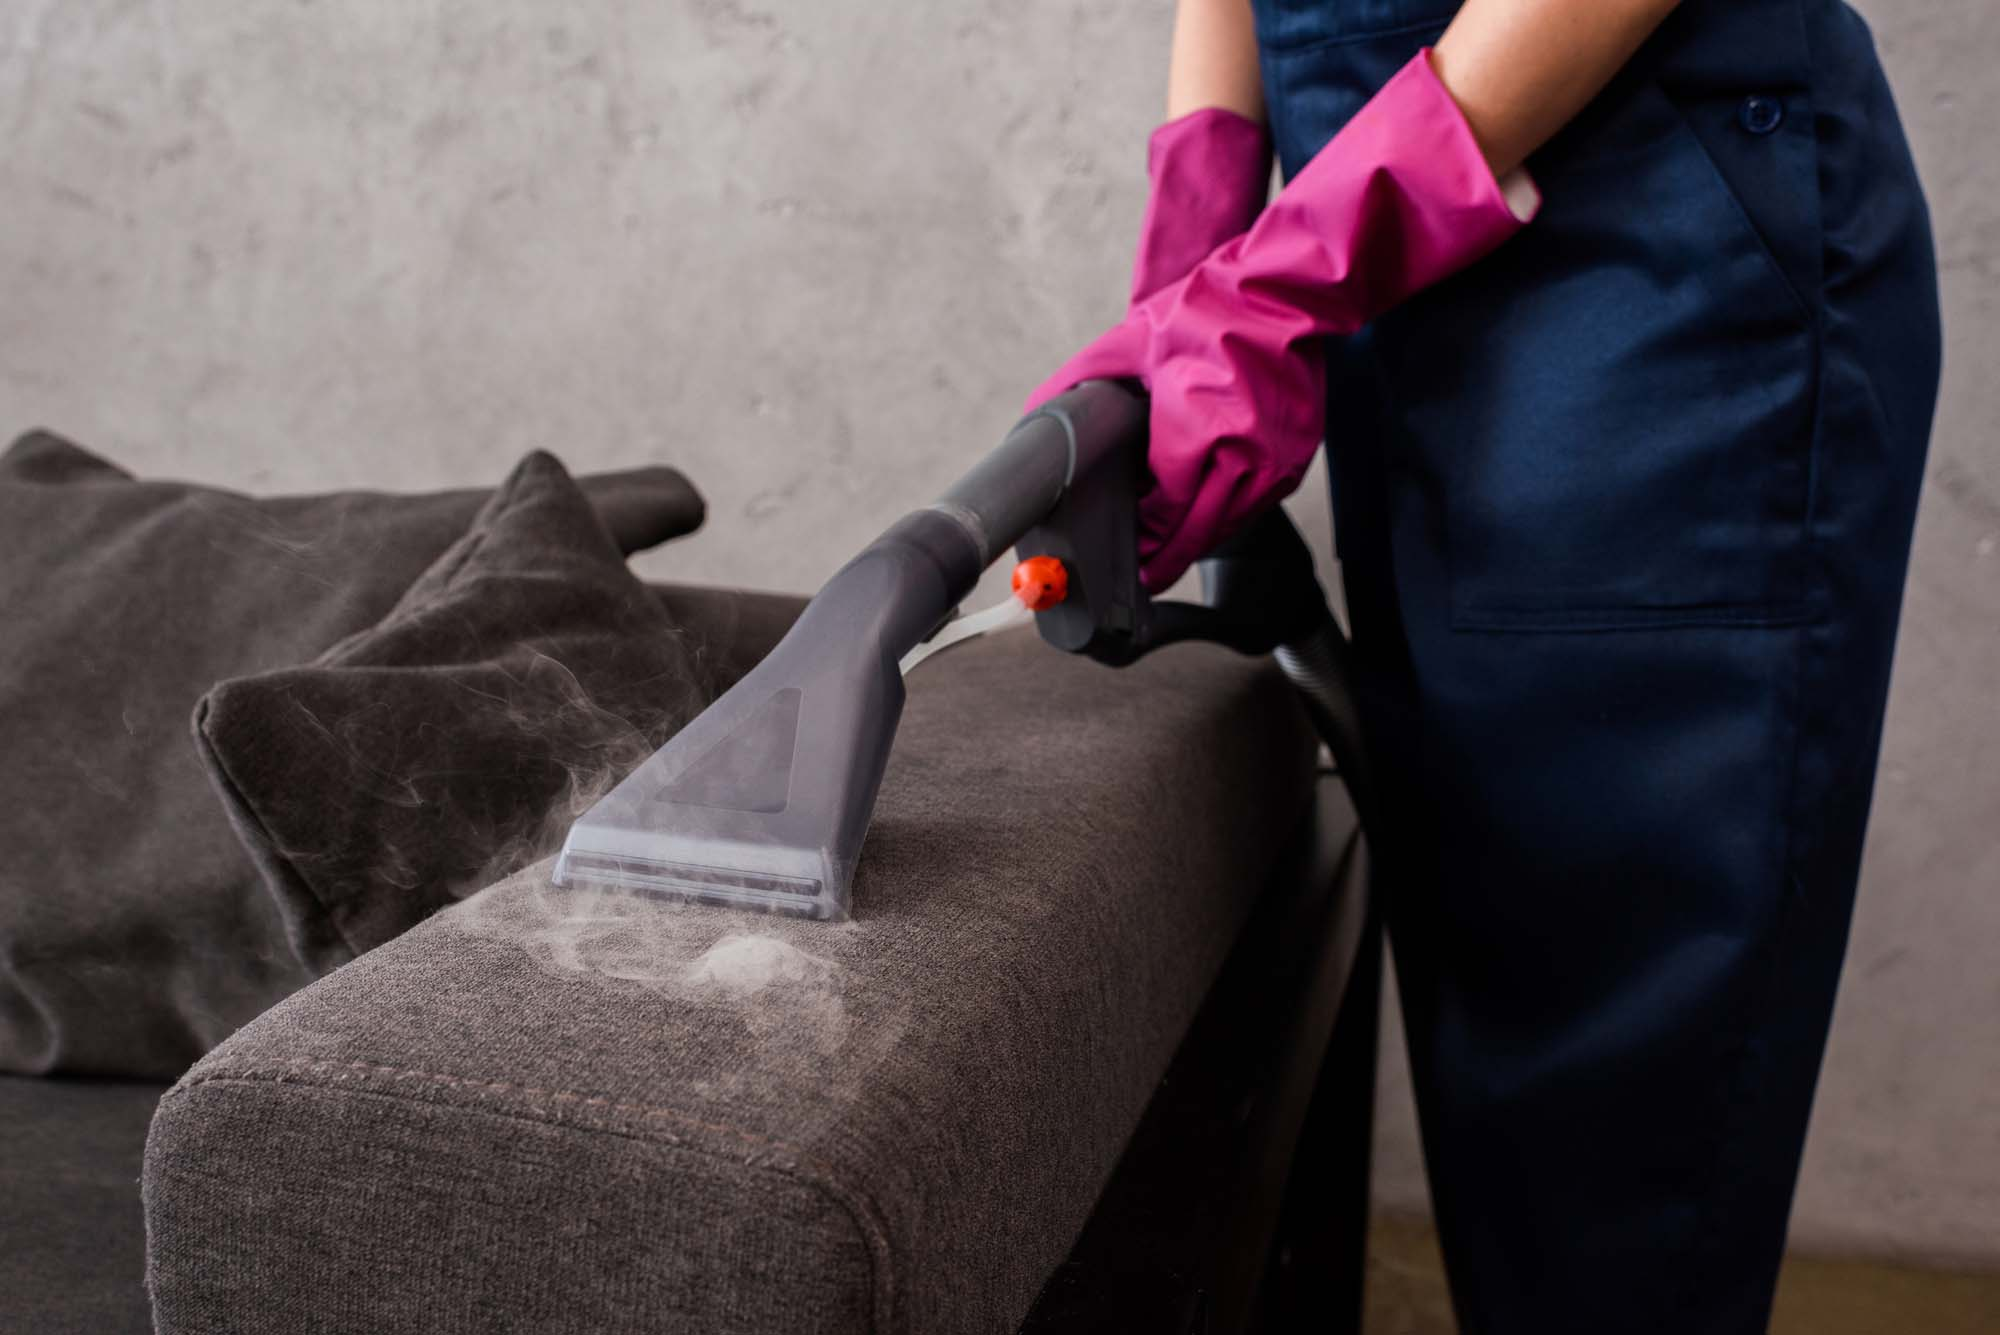 How Do You Clean Upholstery?